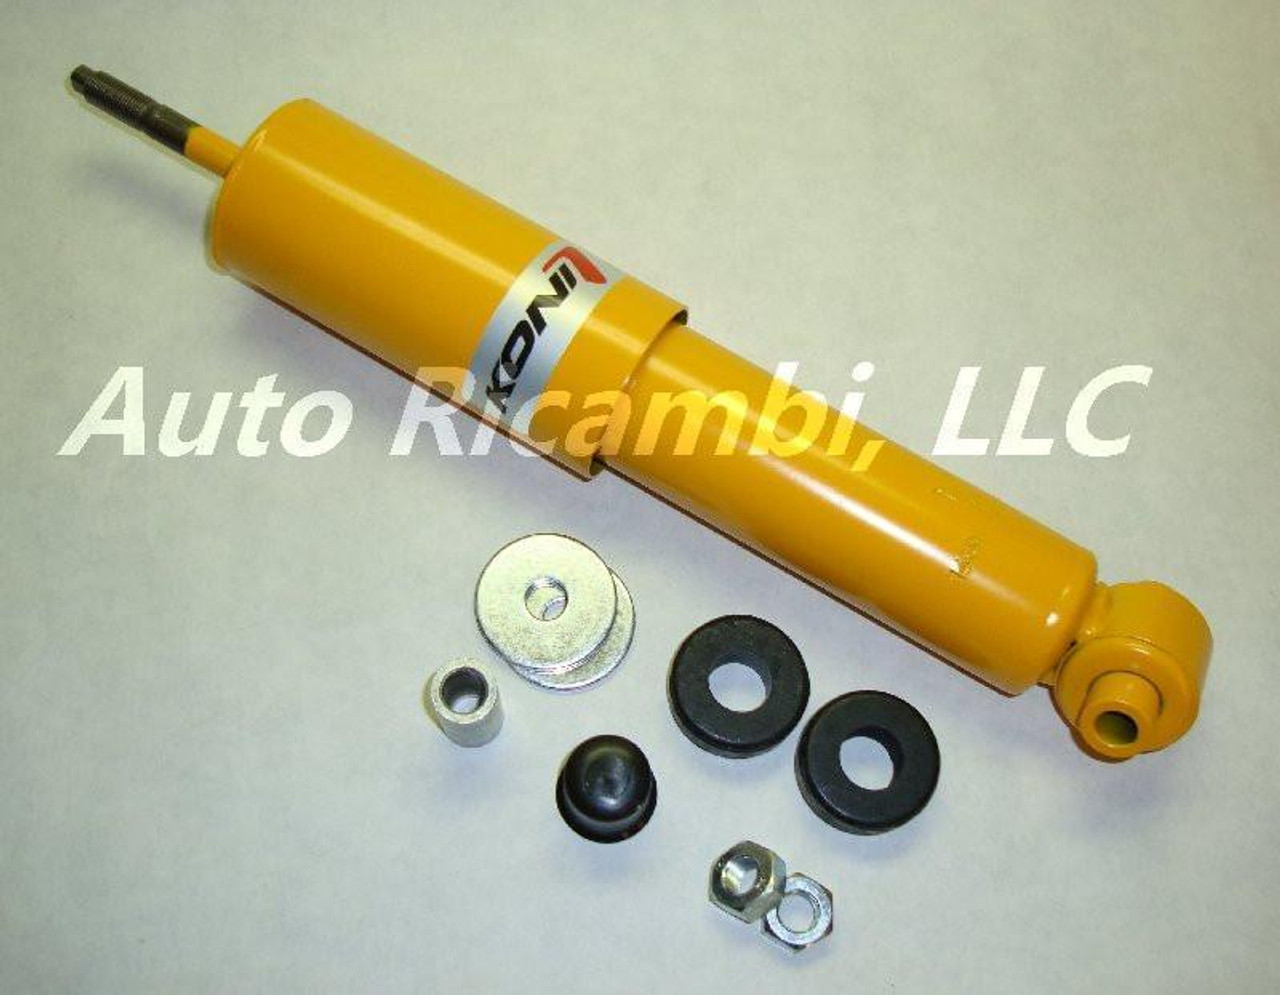 High performance Koni Yellow Sport double adjustable front shock FIAT 124 Spider, Sport Coupe, Spider 2000 and Pininfarina - 1966-1985 - Auto Ricambi